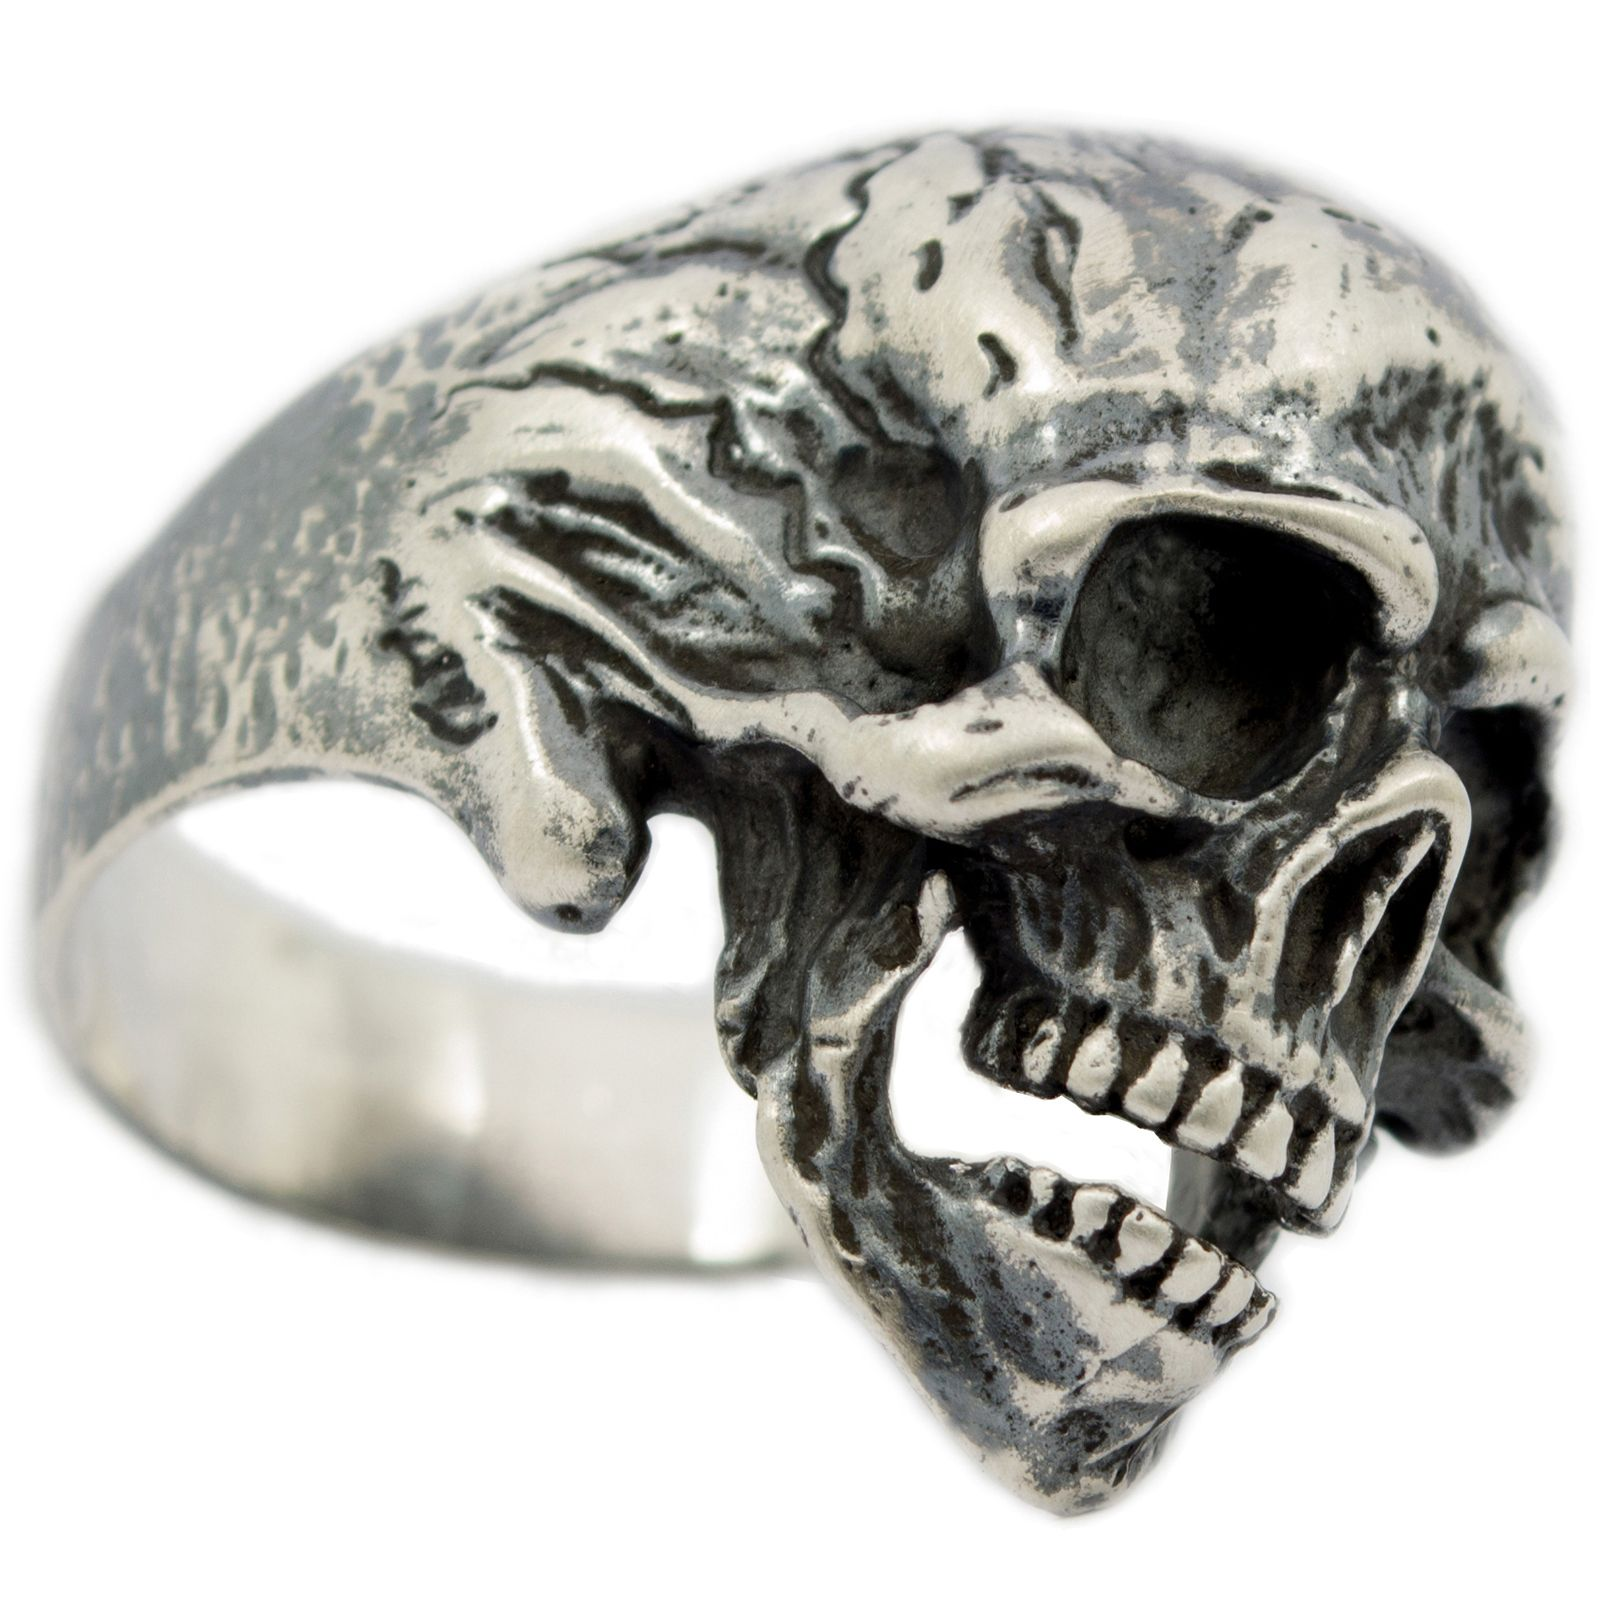 deluge rings products product sales skeleton skull image